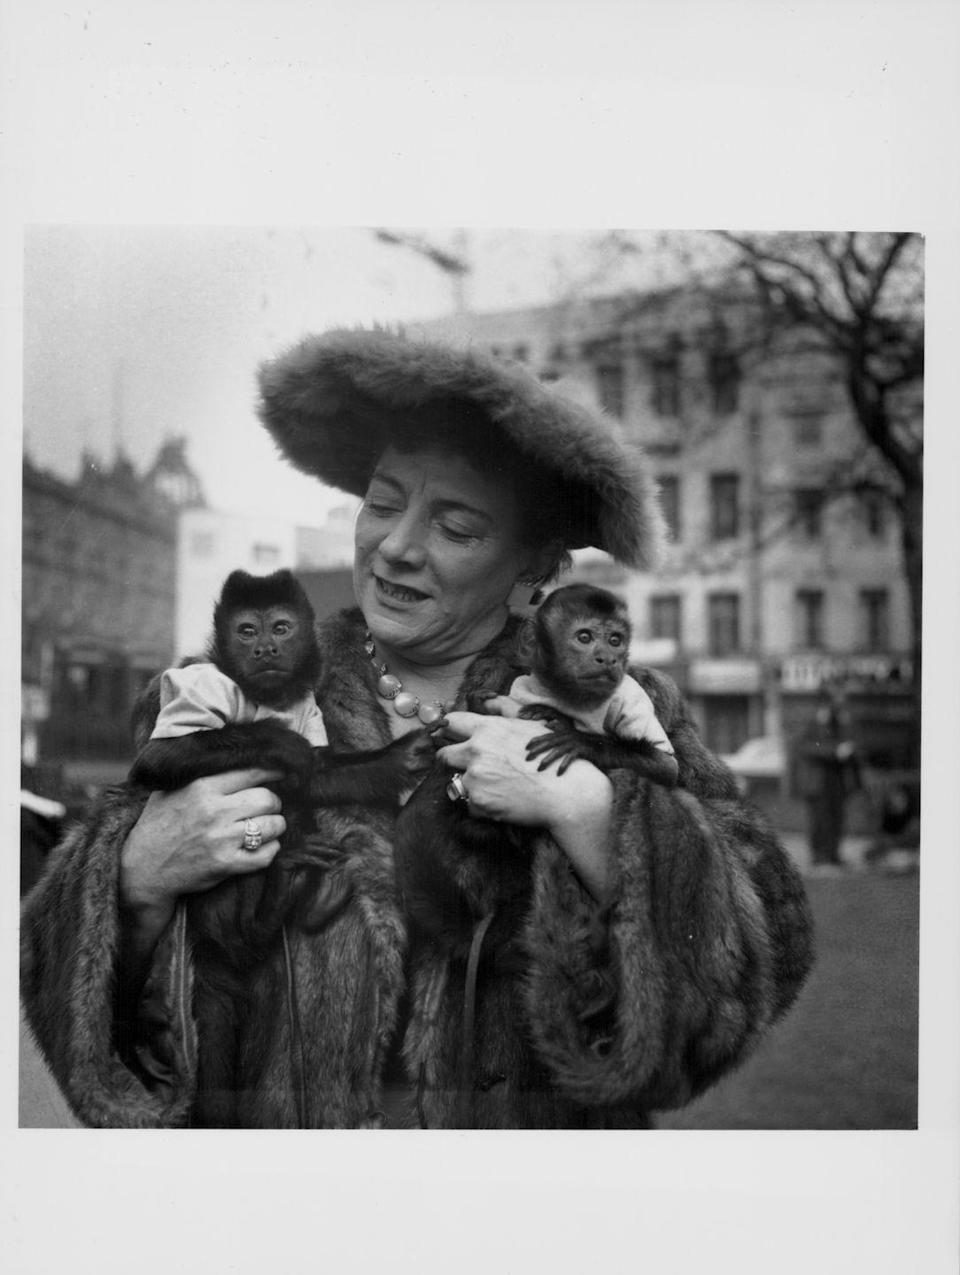 <p>Comedian Hylda Baker steps out in London with her two pet monkeys. Hylda was on her way to perform in the Prince of Wales Royal Variety Show in 1956 and arrived in town, with her pets in tow, beforehand. </p>